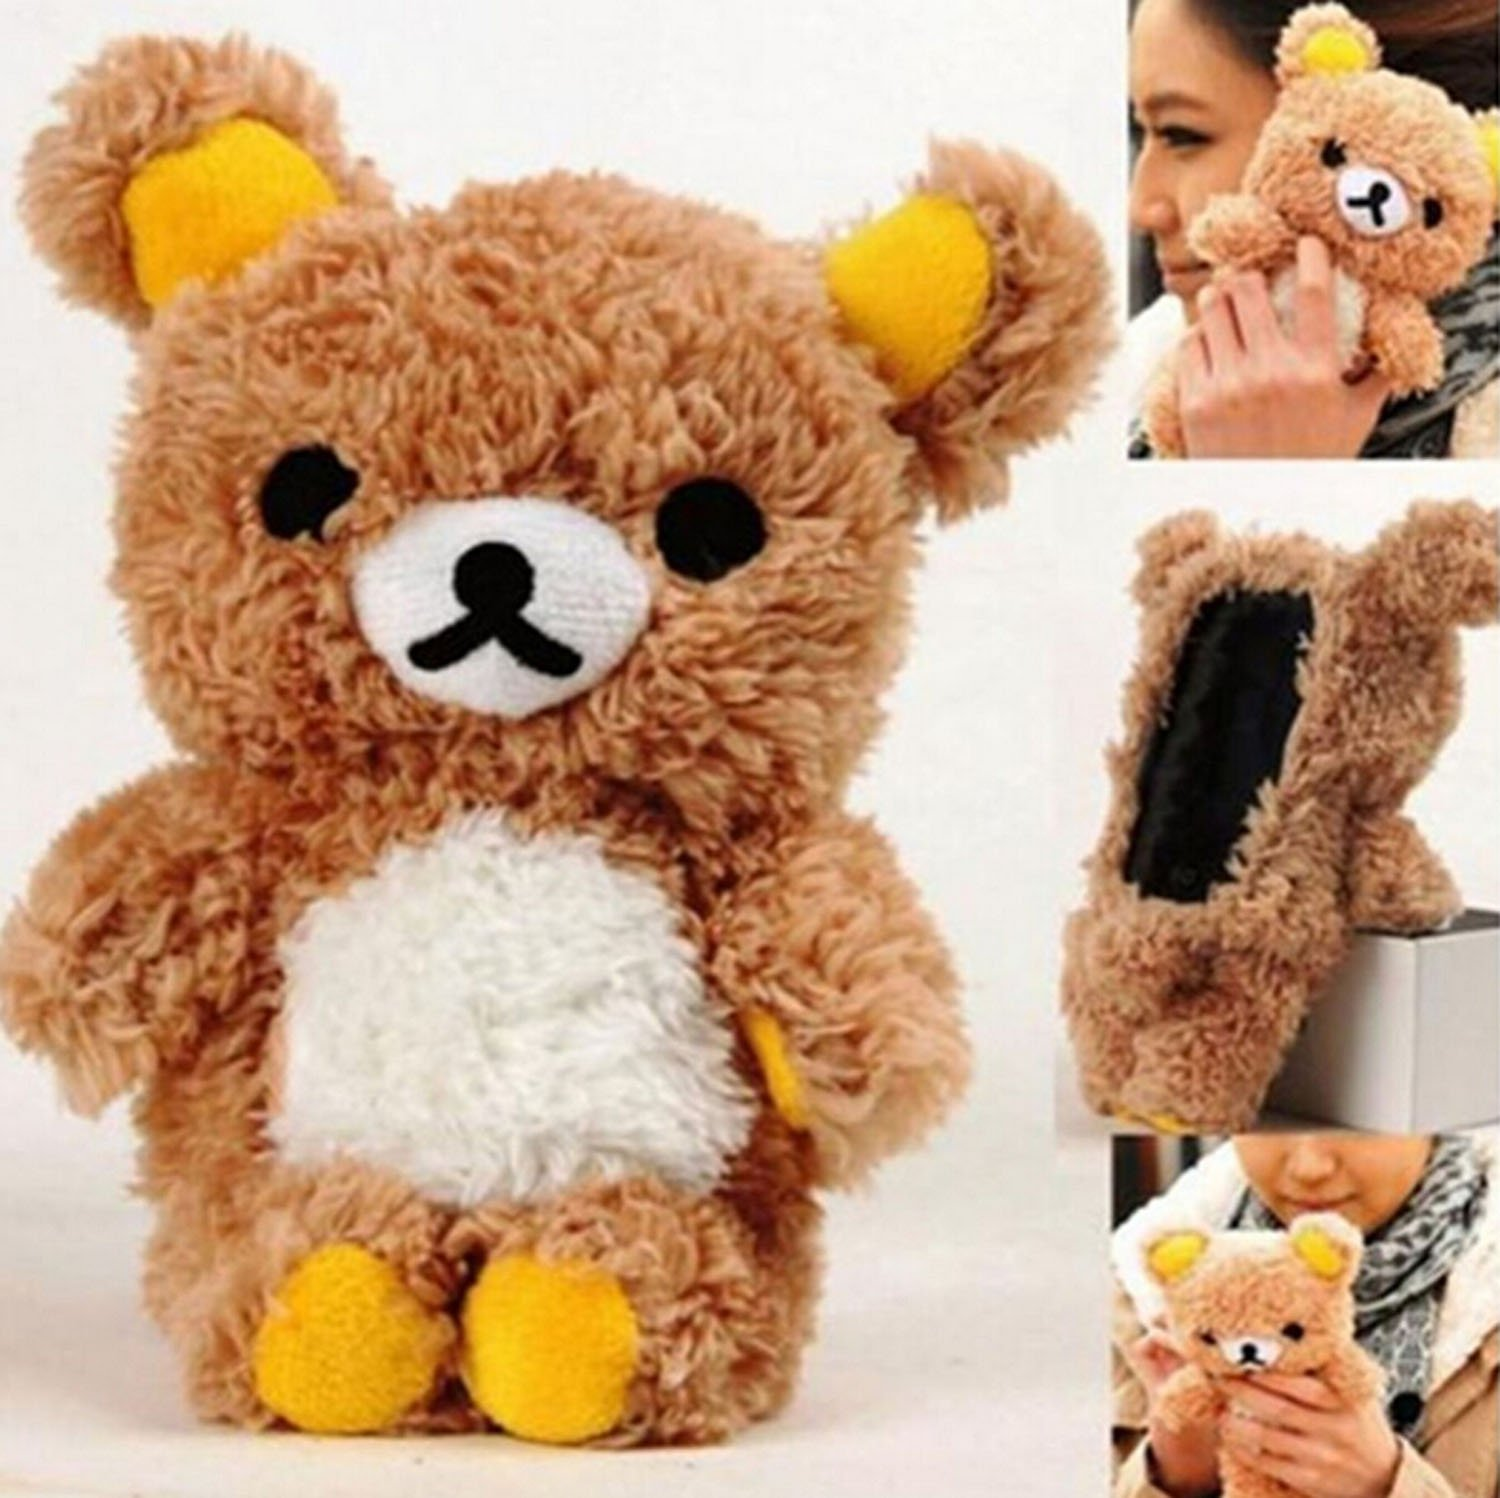 Amazon.com: Galaxy S6 Edge case,Emilys fashion Cute 3D Lovely Teddy Bear Doll Toy Cool Plush Fitted Back Phone case Fur Hair Plush Cover for Samsung Galaxy ...